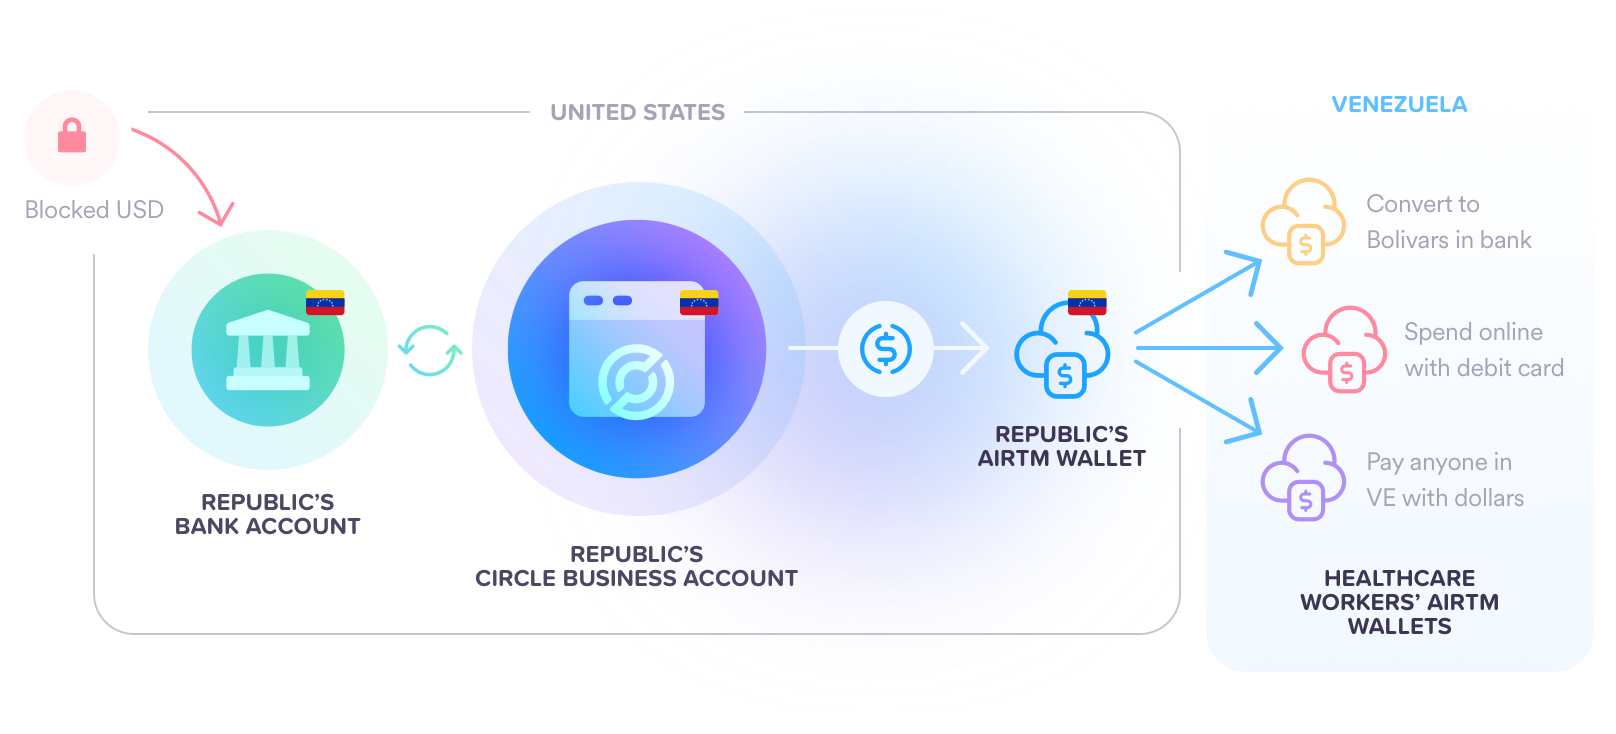 US Dollars are converted to USDC through the Republic's Circle account, and disbursed to citizens through their Airtm wallet.